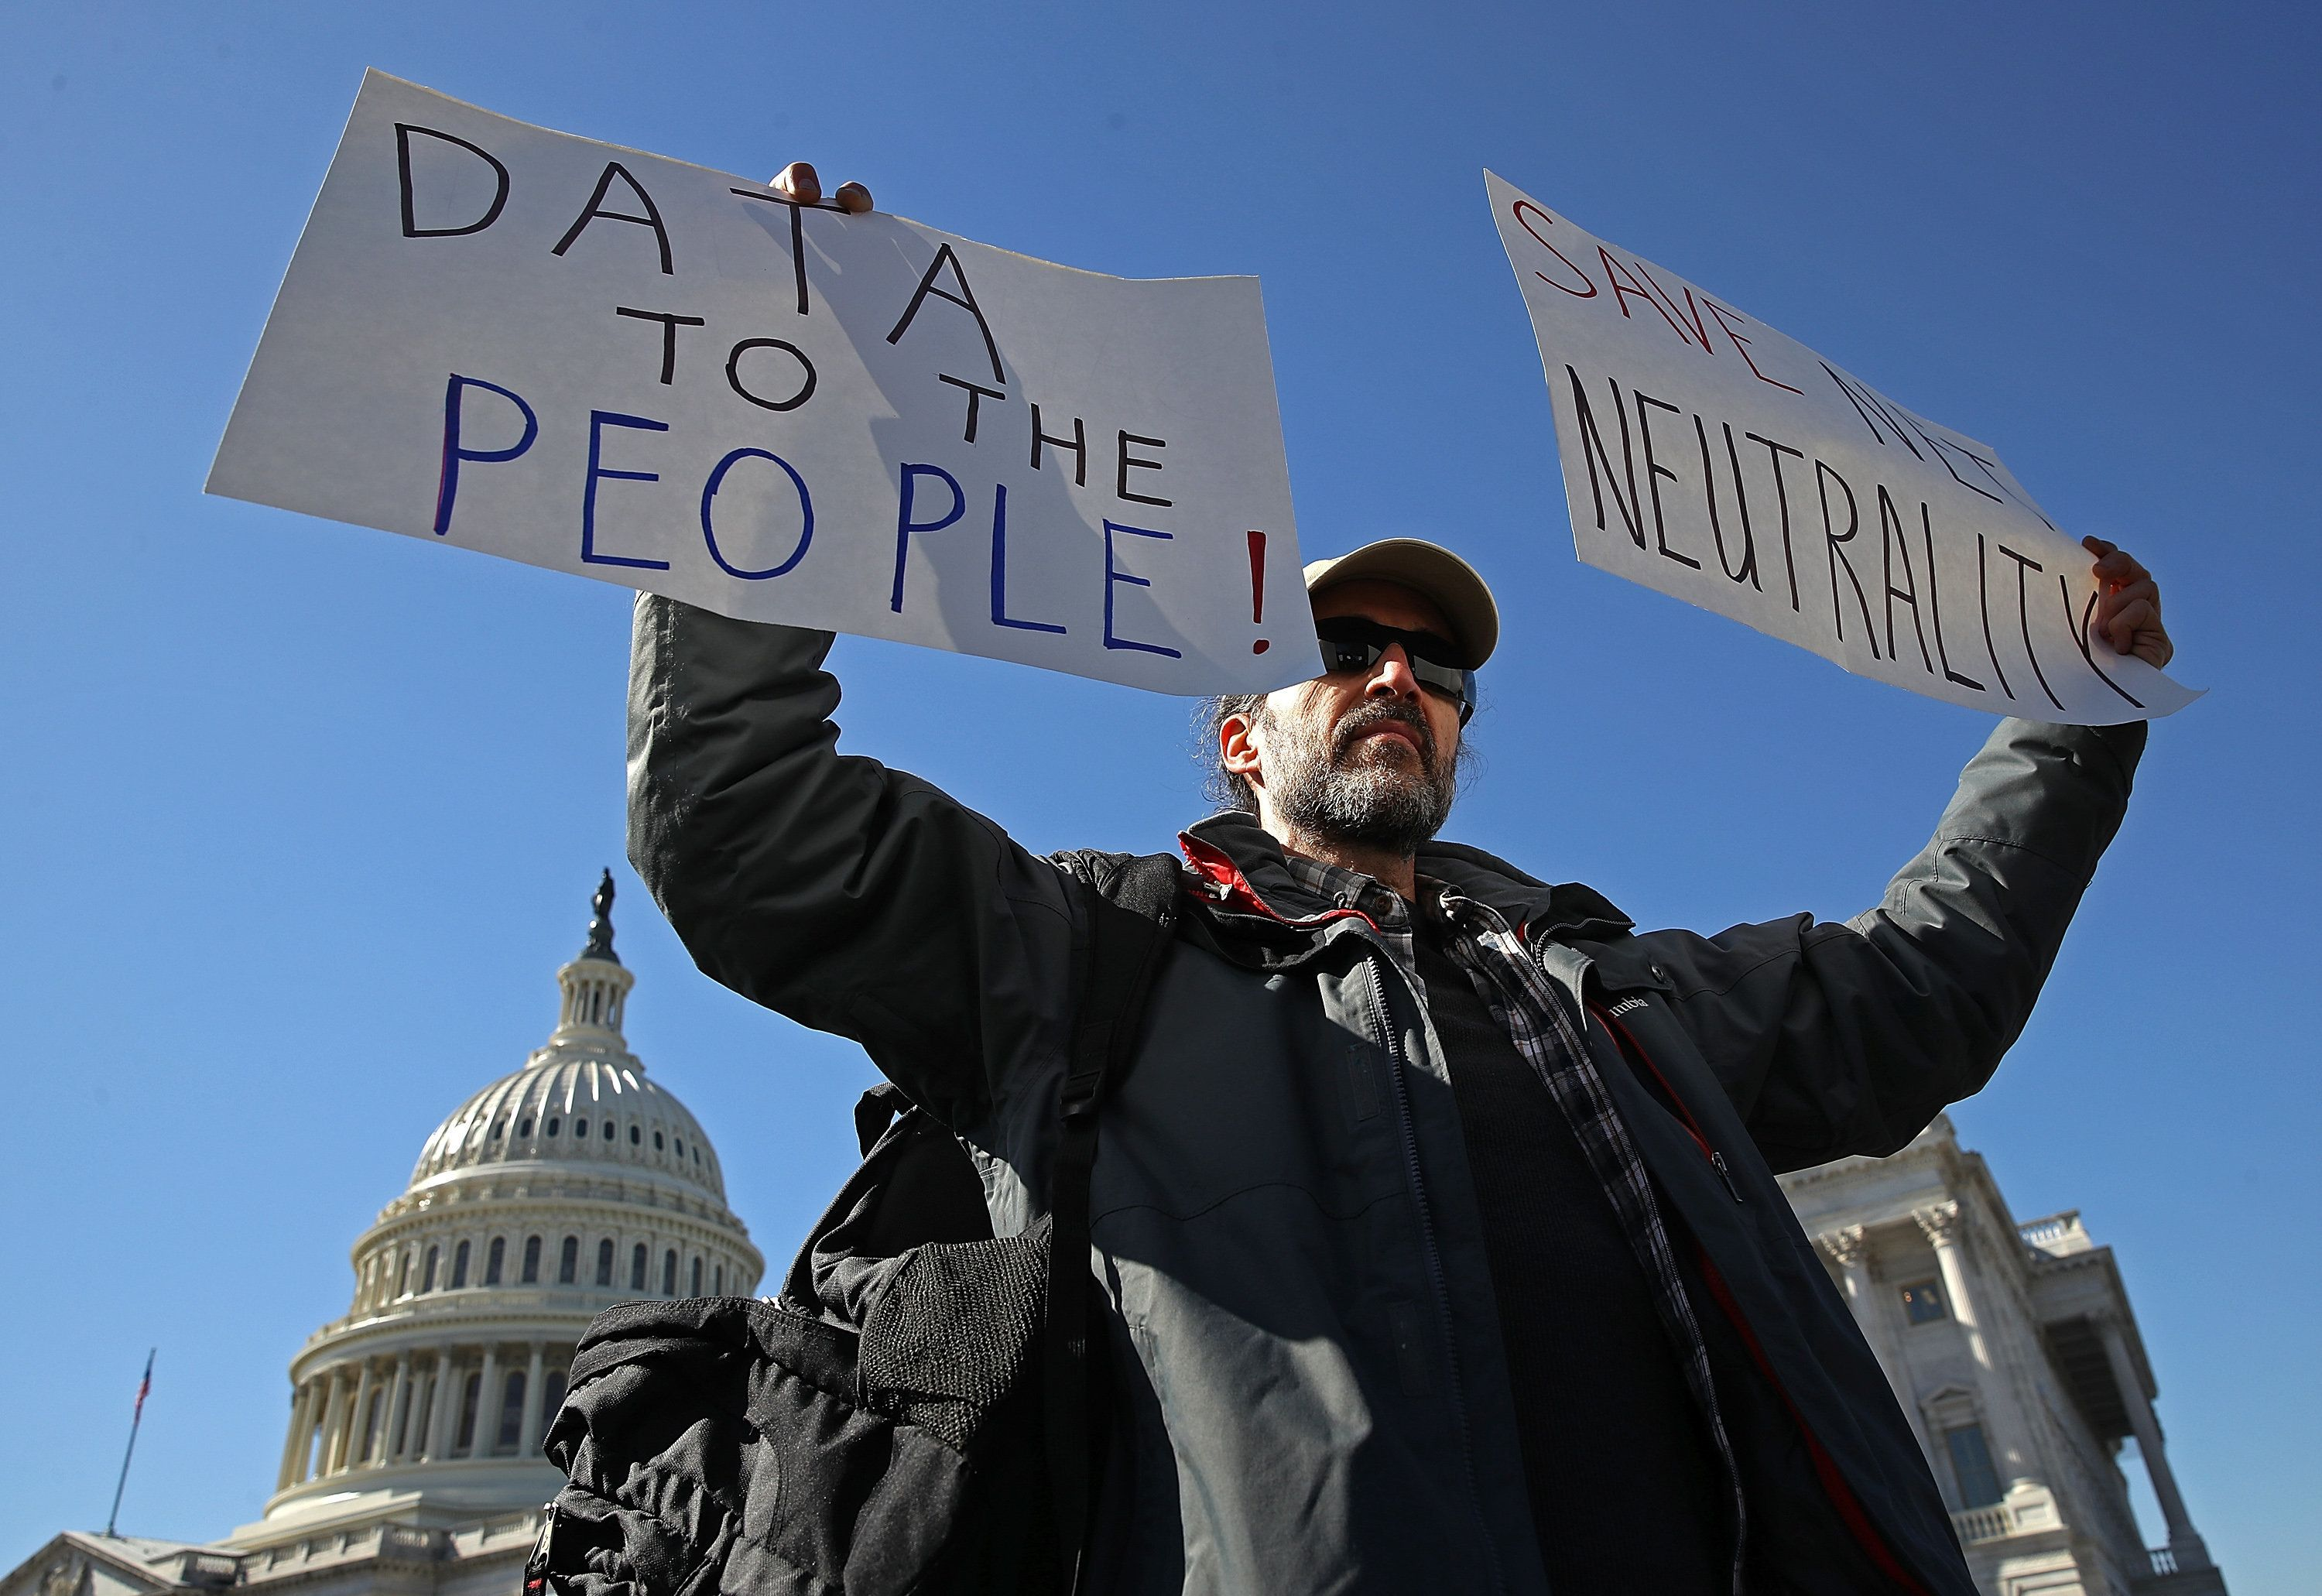 WASHINGTON, DC - FEBRUARY 27:  Mike Adkins joins roponents of an open and unregulated internet while attending a news conference at the U.S. Capitol February 27, 2018 in Washington, DC. Today has been designated a 'net neutrality day of action'by proponents of the legislation.  (Photo by Win McNamee/Getty Images)